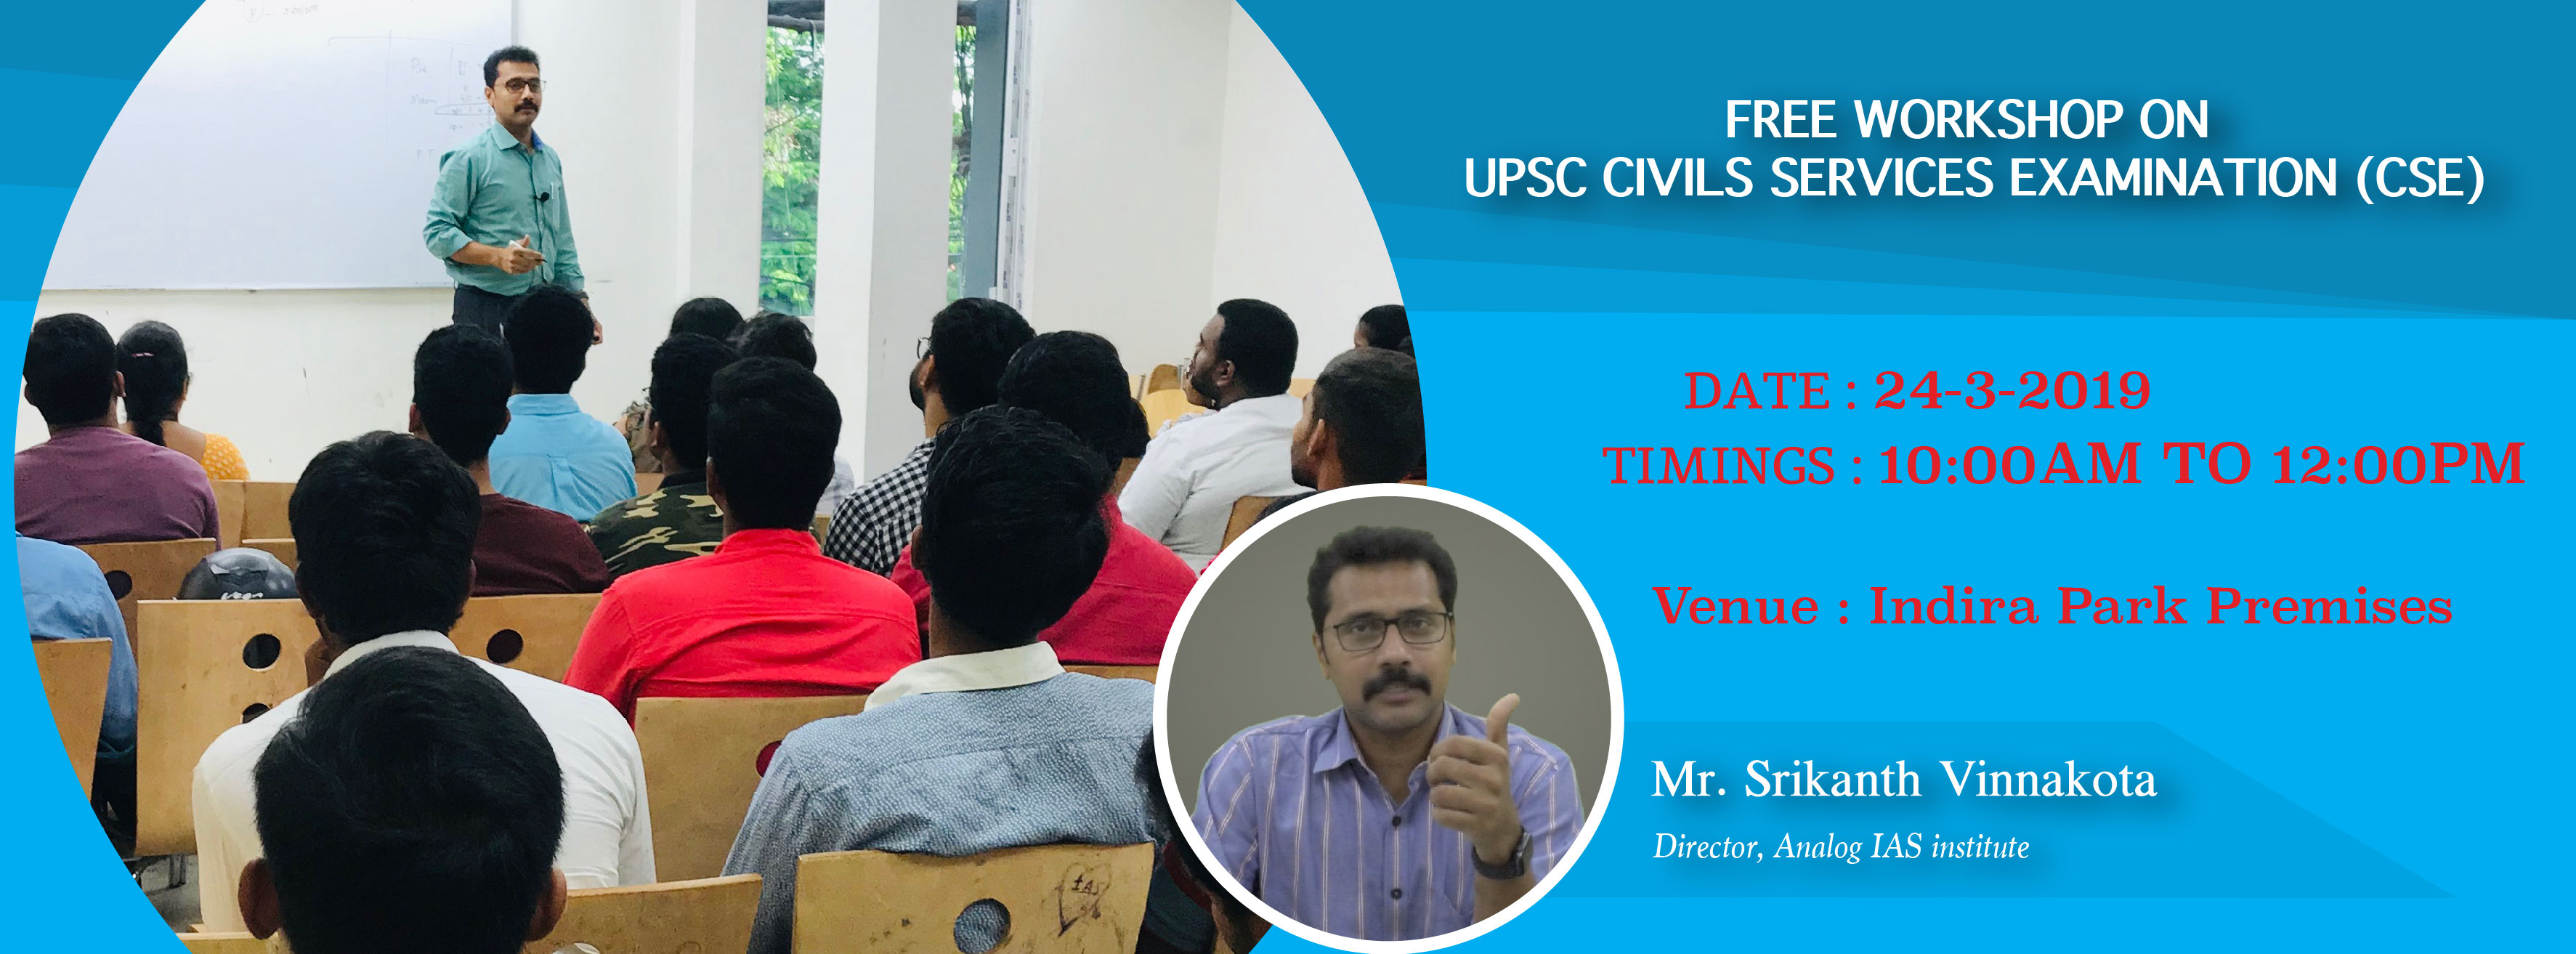 Free Workshop on UPSC